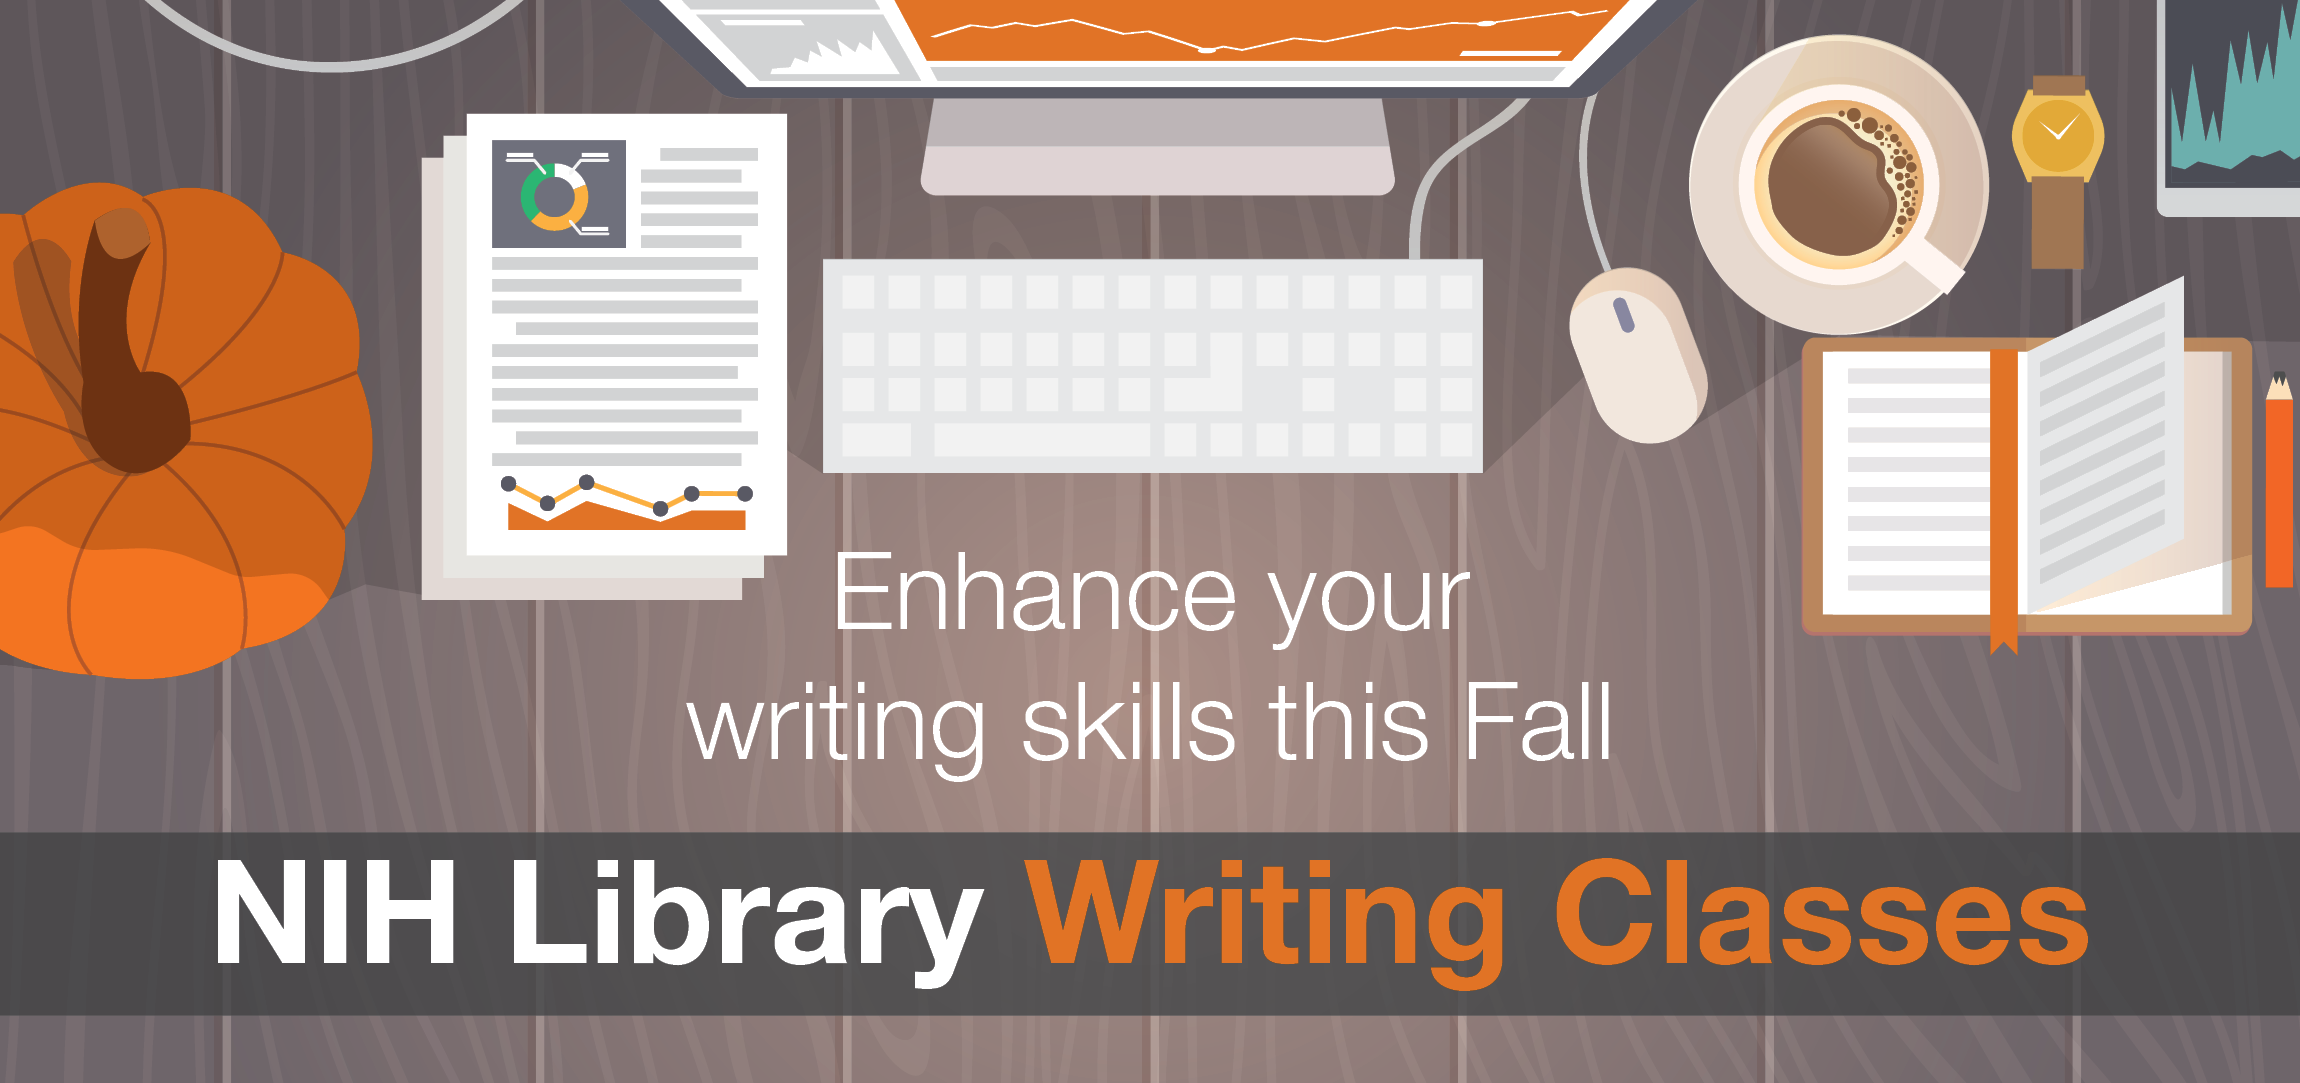 Enhance your writing skills writing classes